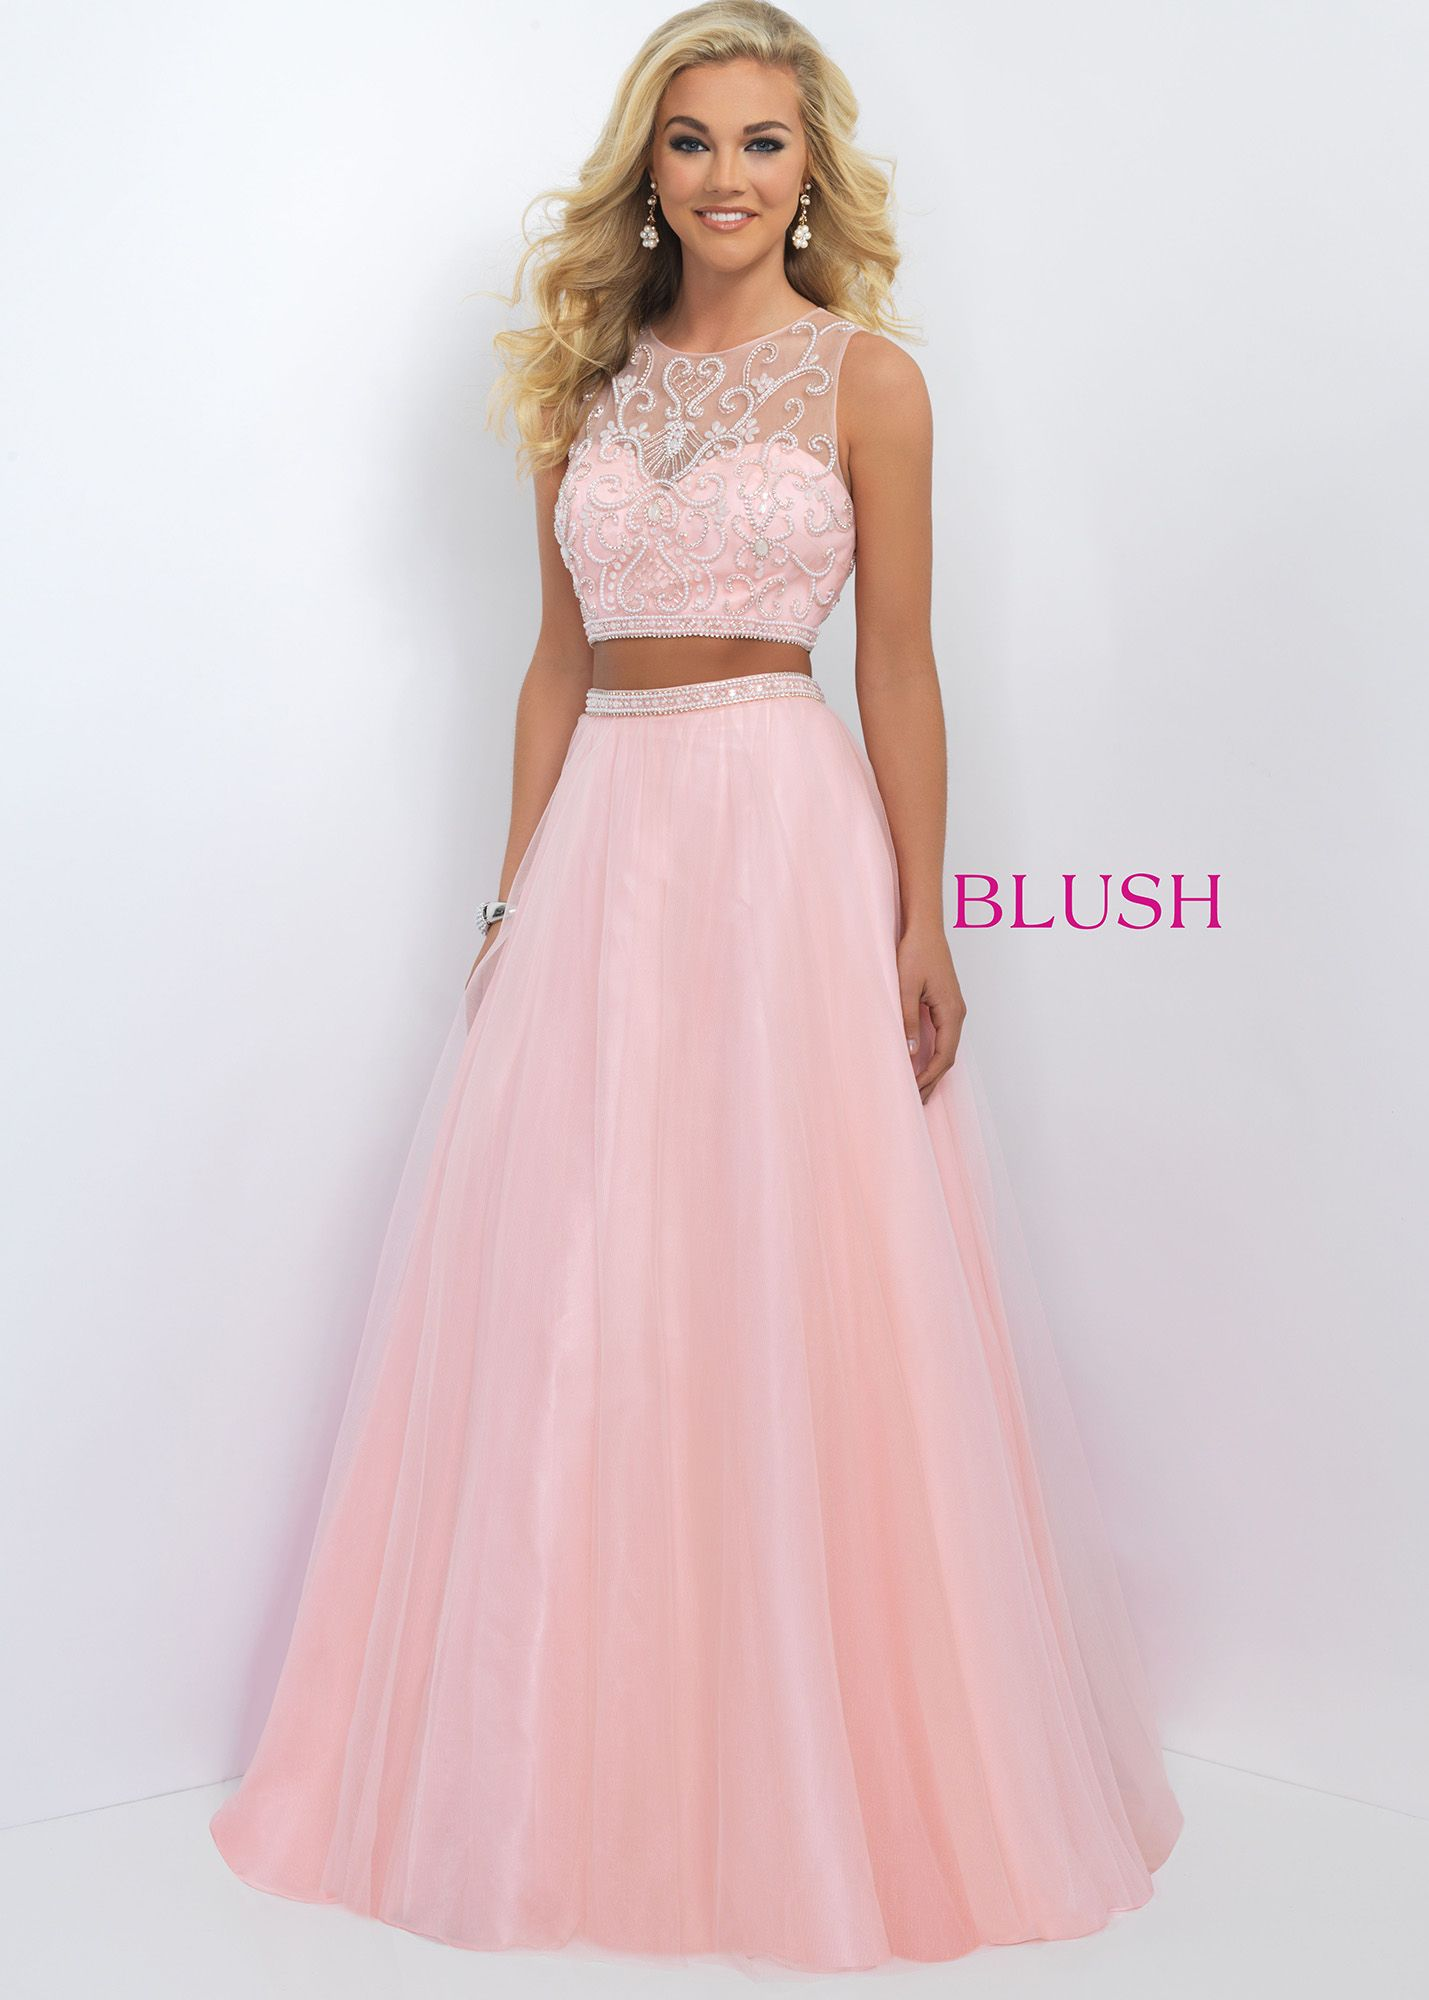 Pinned onto Prom Dresses 2016 Board in Holidays & Events Category ...